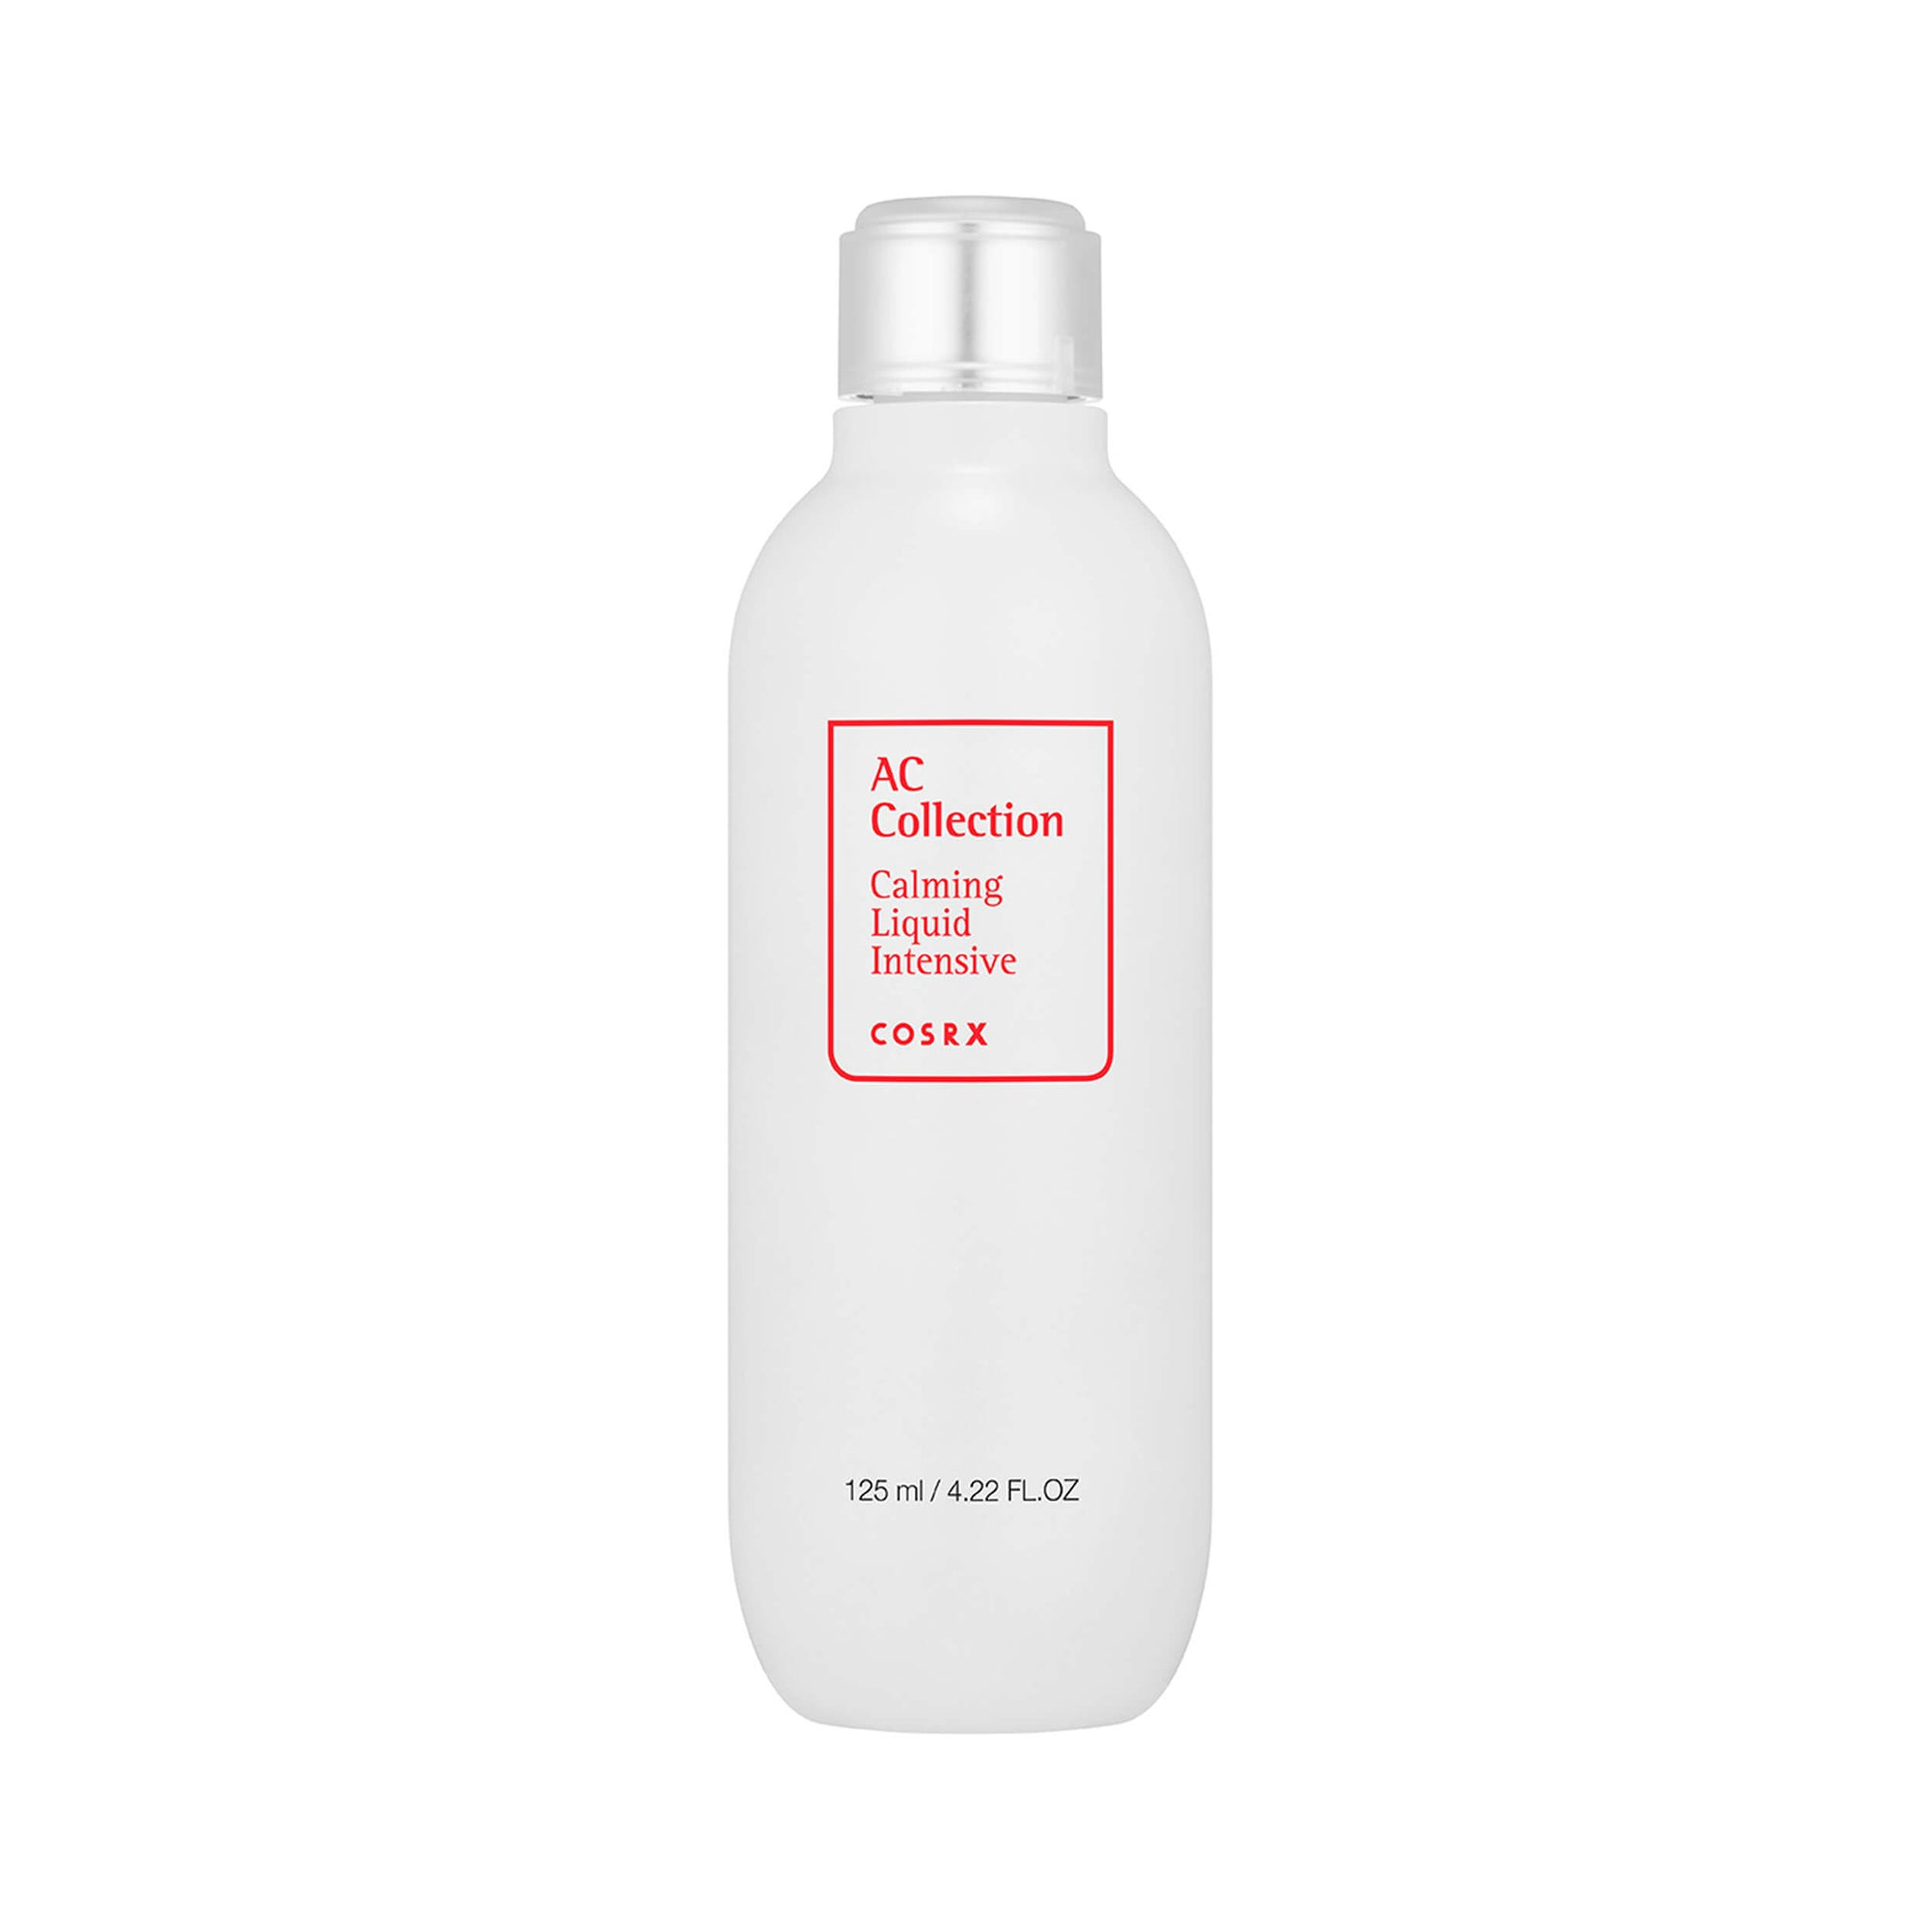 Cosrx AC Collection Calming Liquid Intensive 125 mL